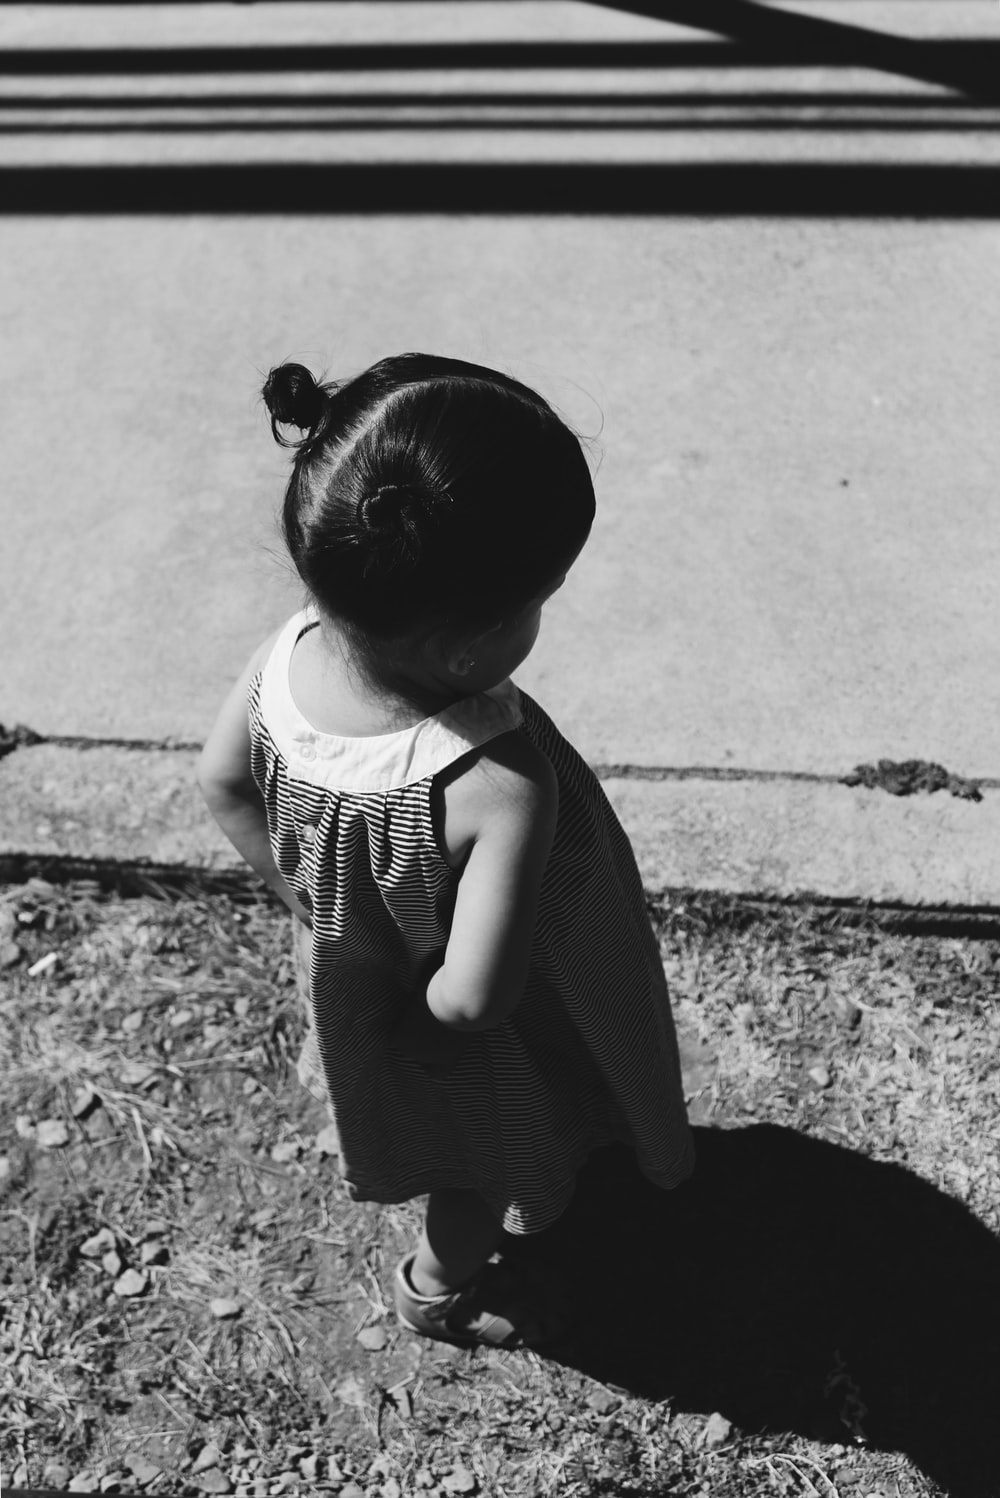 grayscale photo of a girl toddler